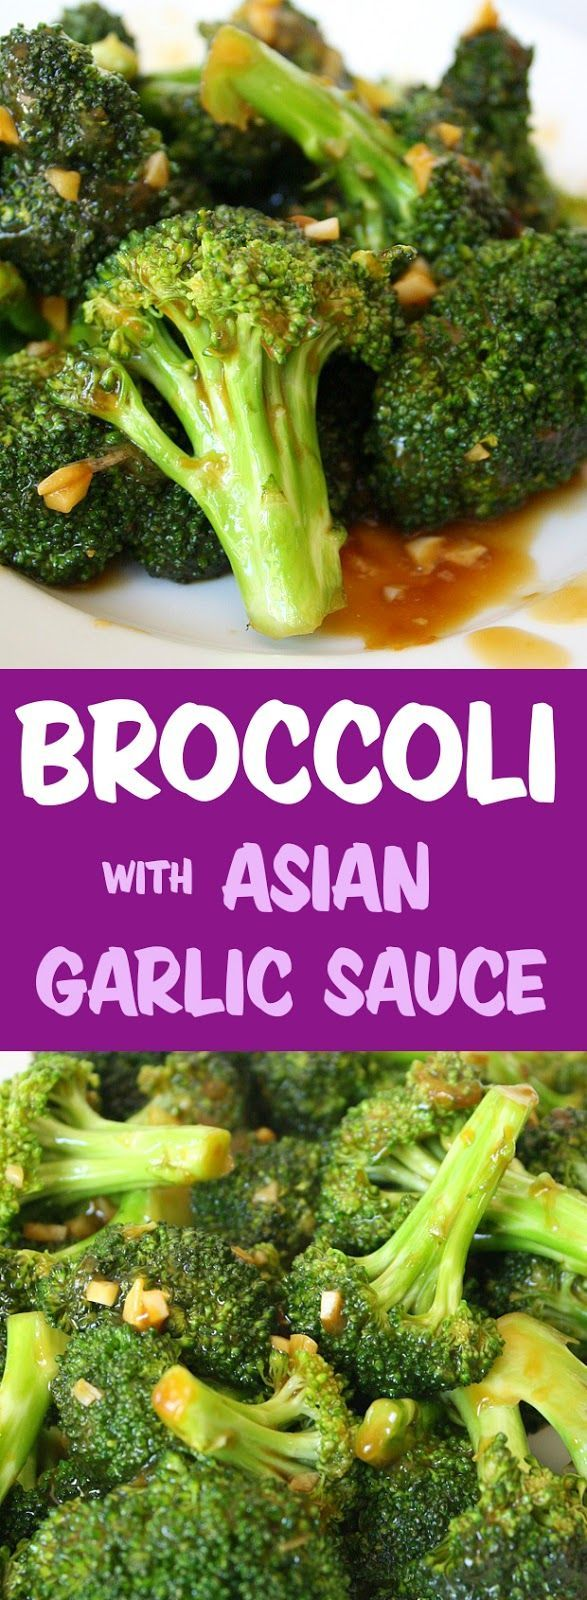 Broccoli with Asian Garlic Sauce - #asian #Broccoli #Garlic #Sauce #chinesemeals